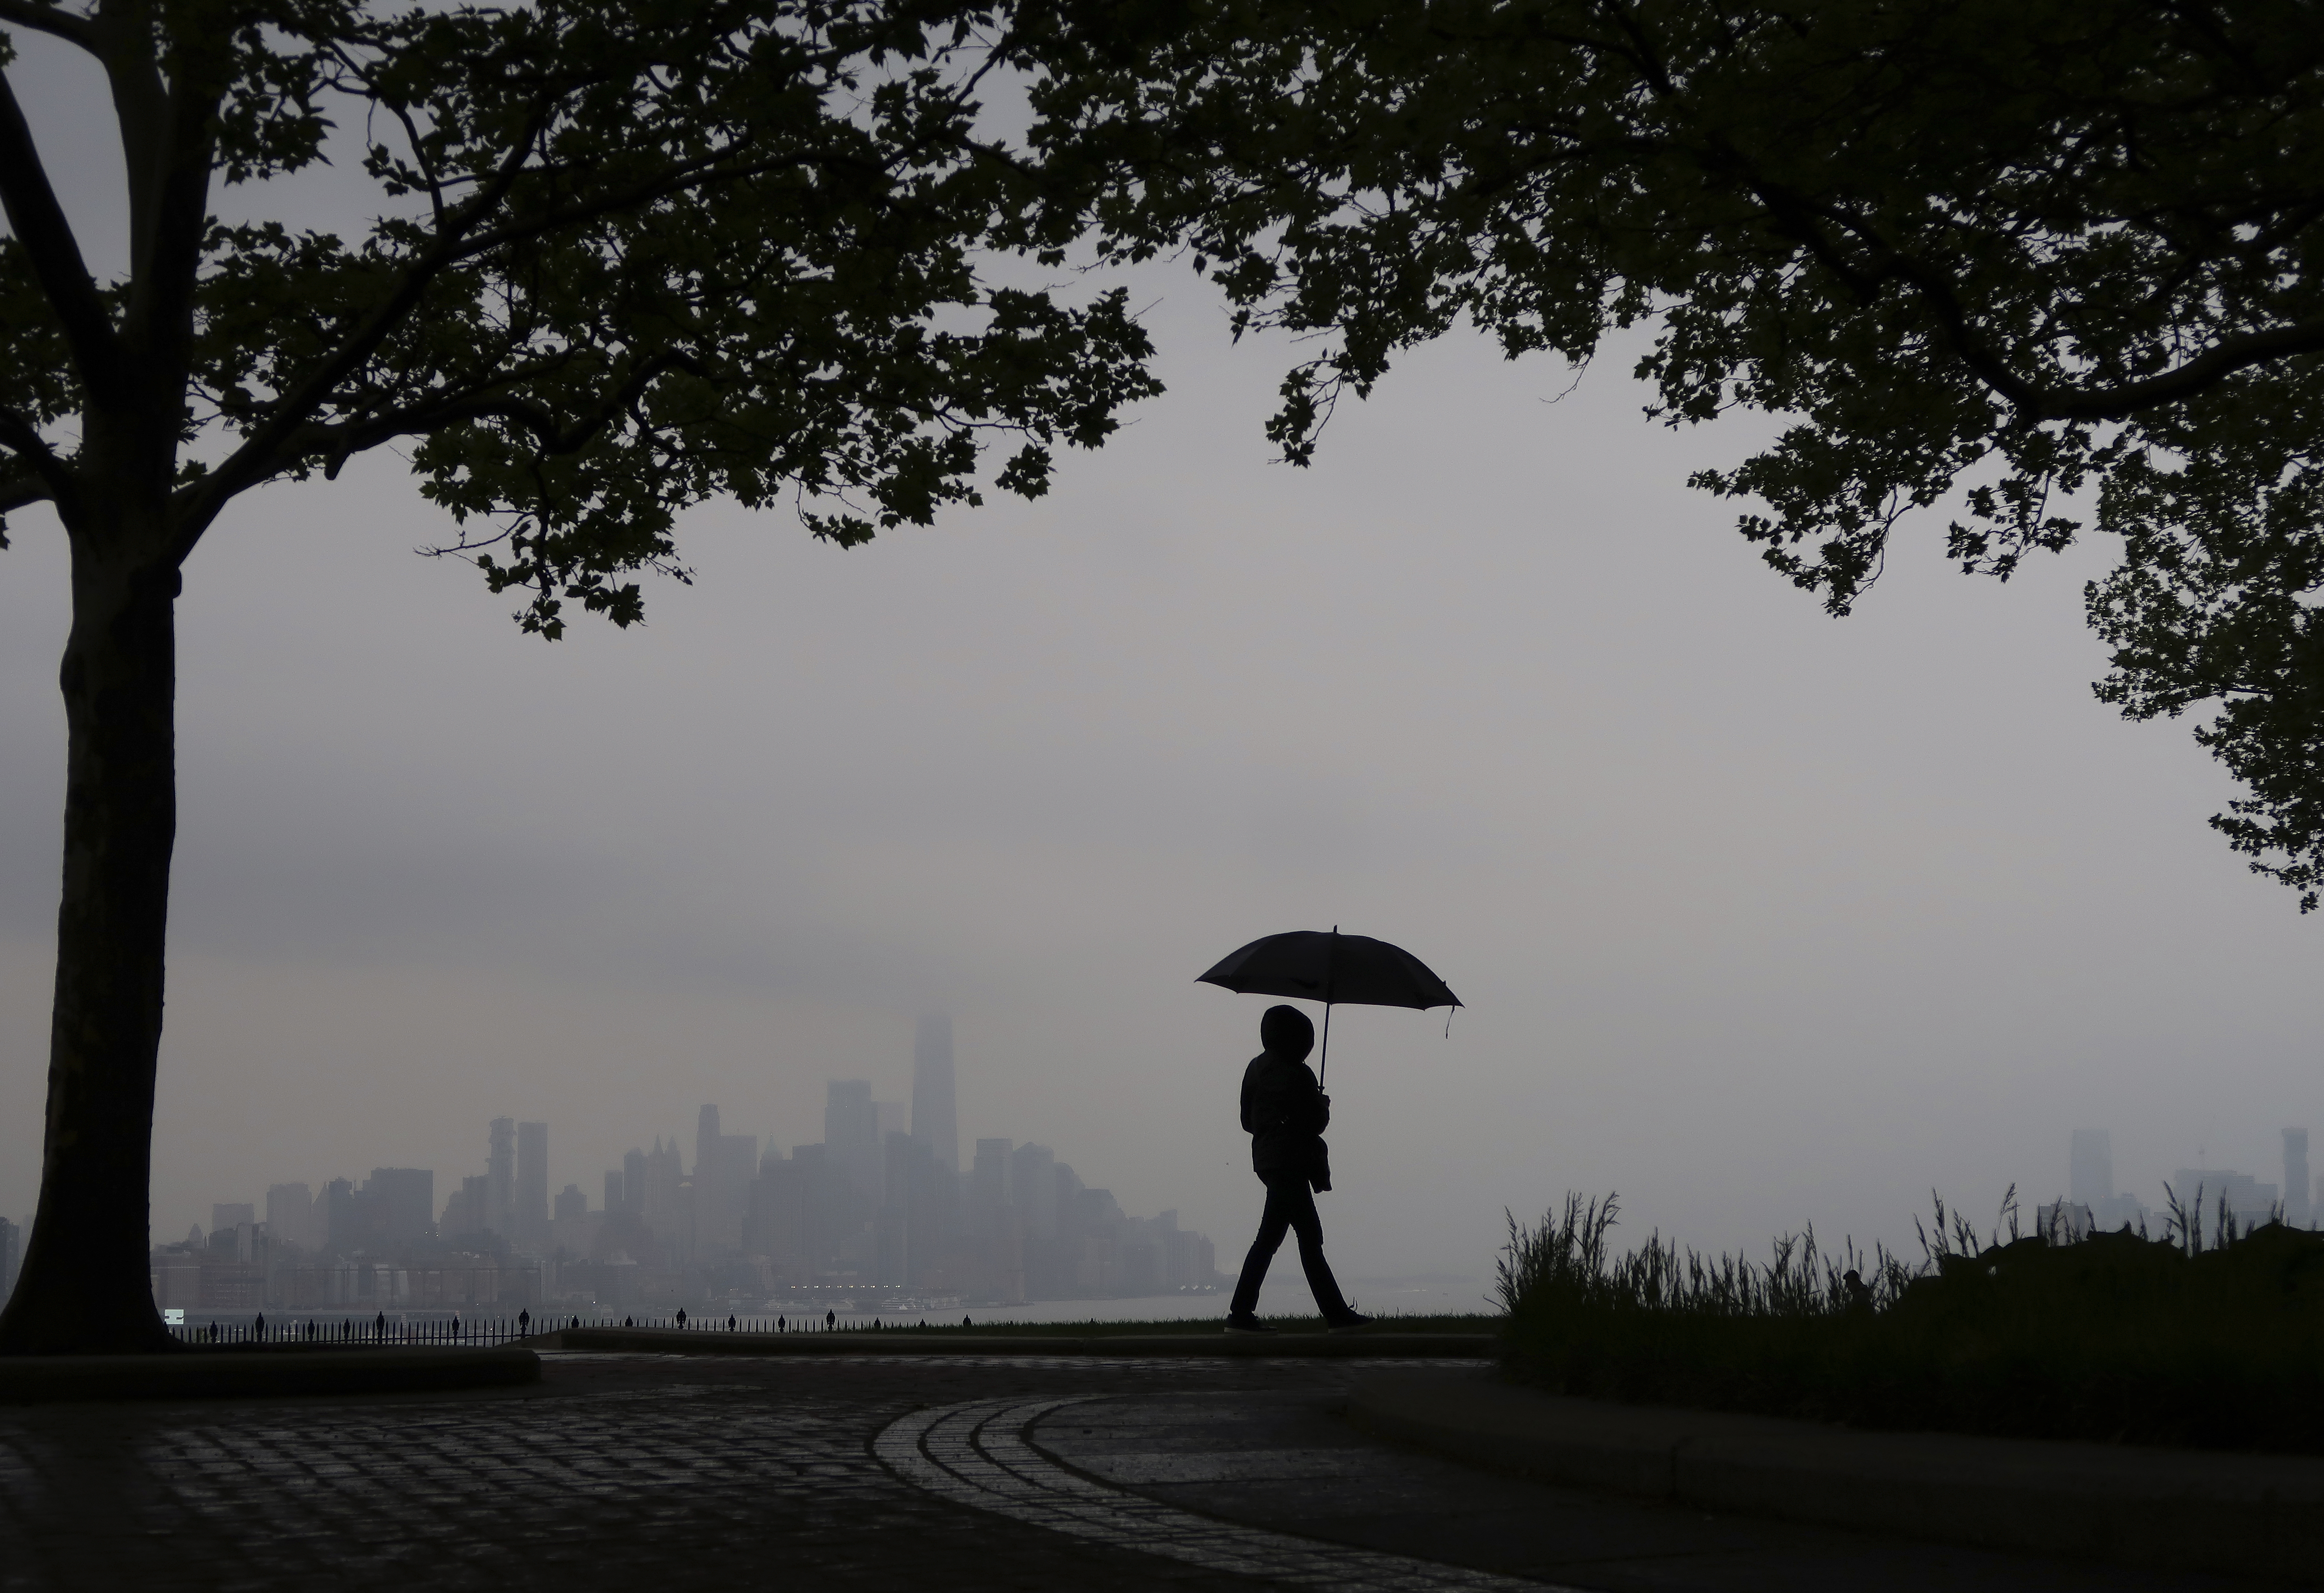 A person walks in front of the skyline of lower Manhattan and One World Trade Center on a rainy day in New York City on May 12, 2018 as seen from Weehawken, New Jersey.